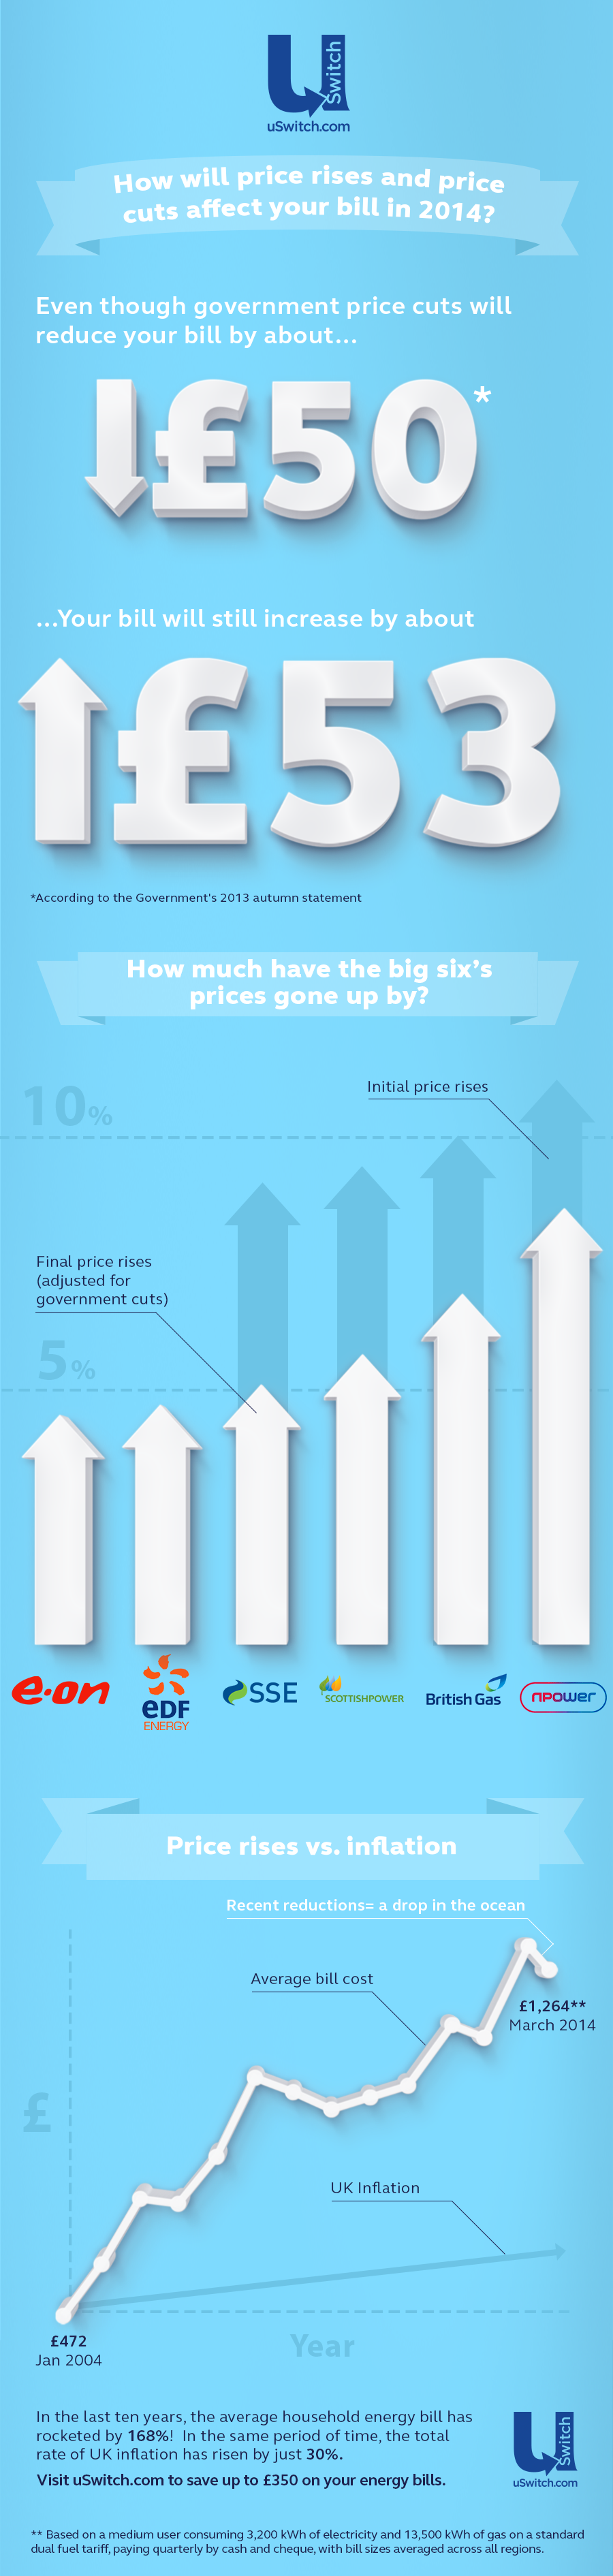 price rise infographic